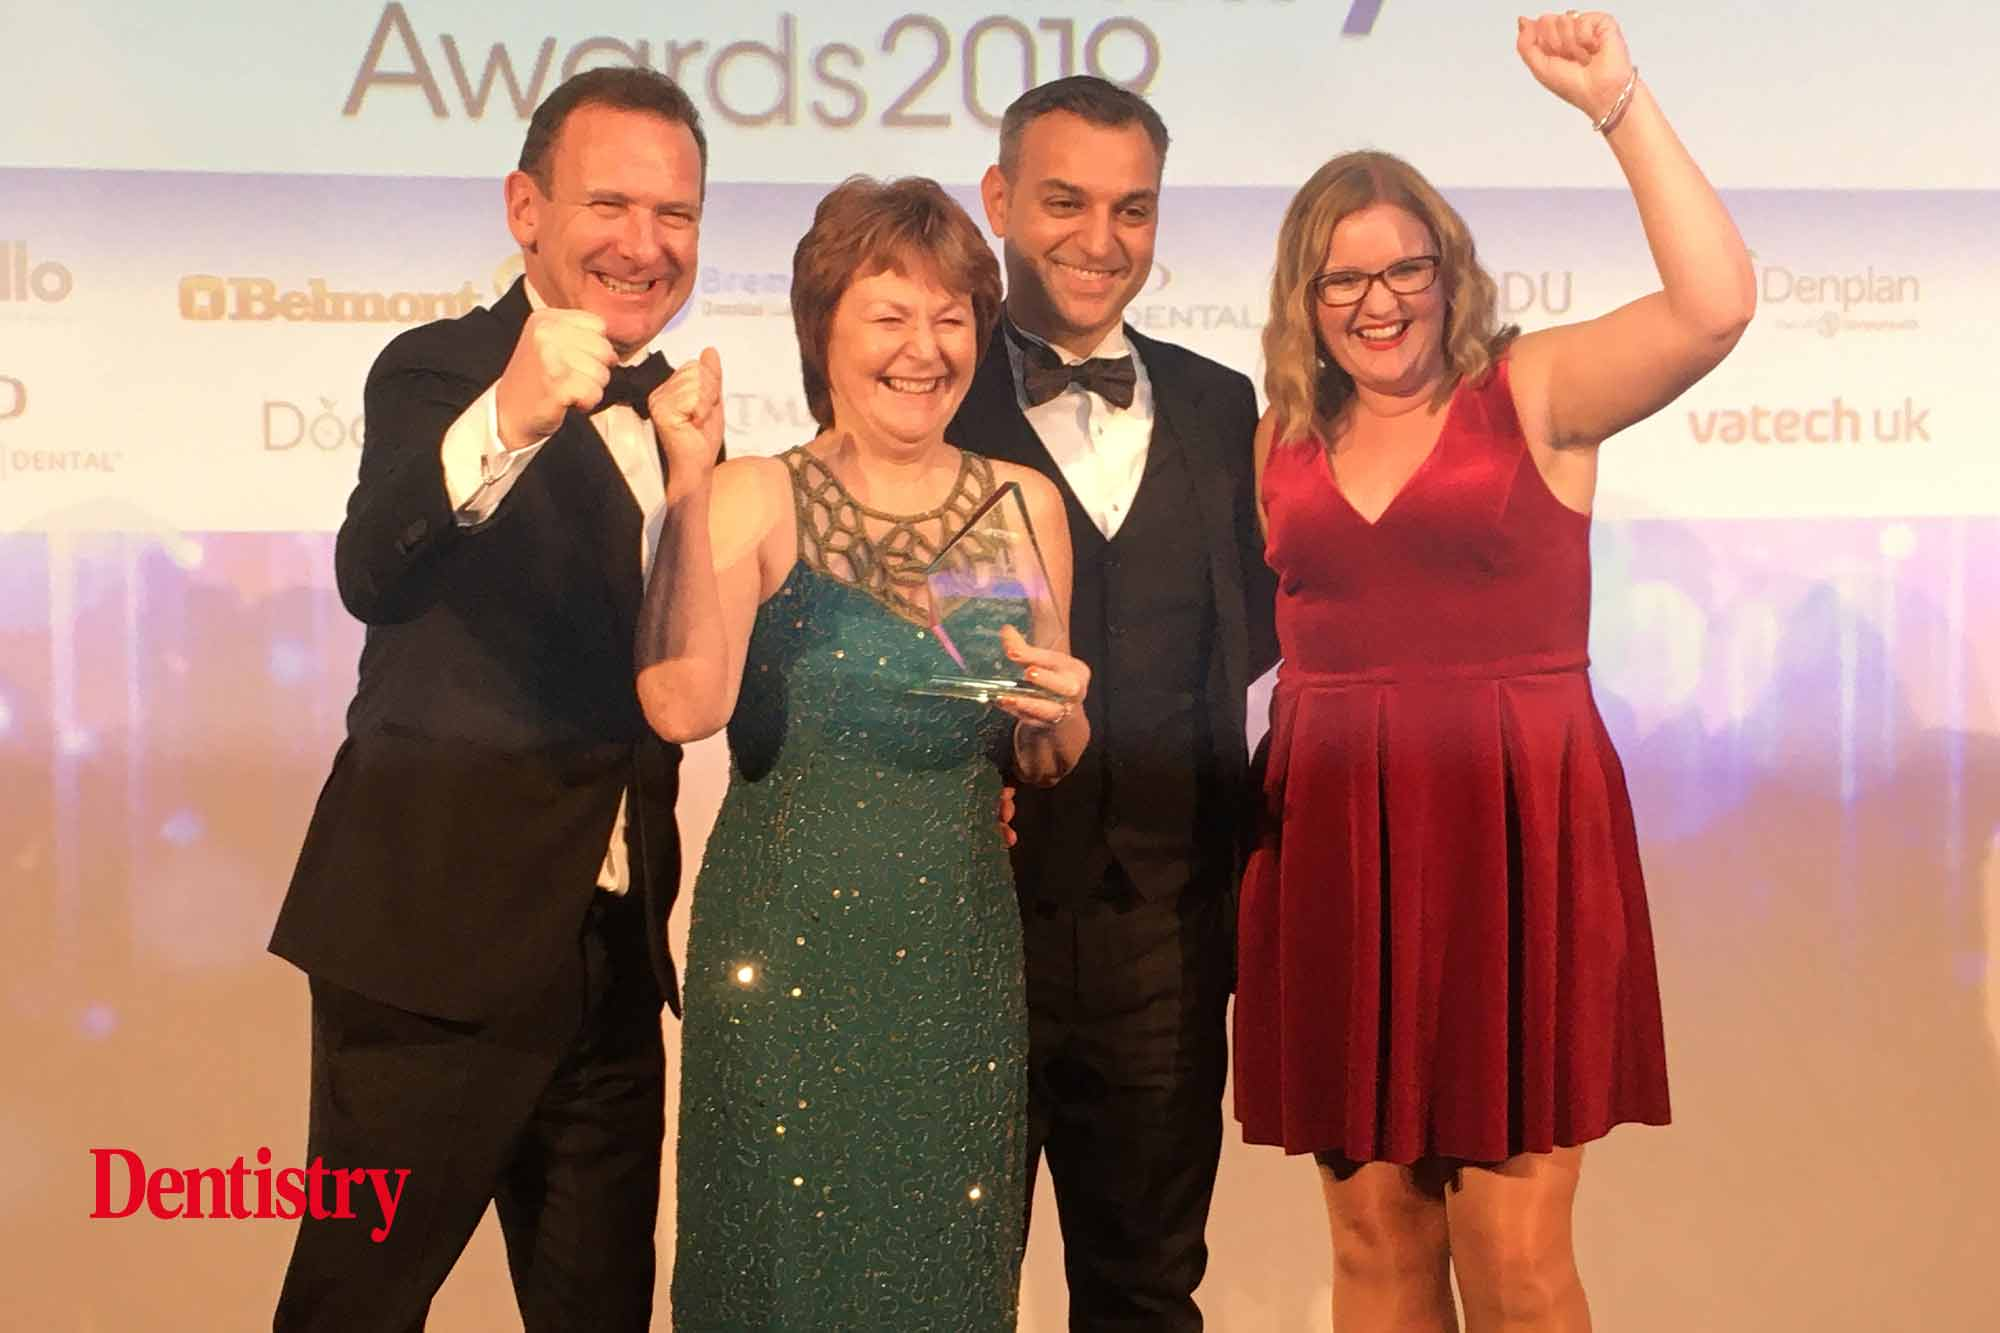 Guildhall private dentistry awards